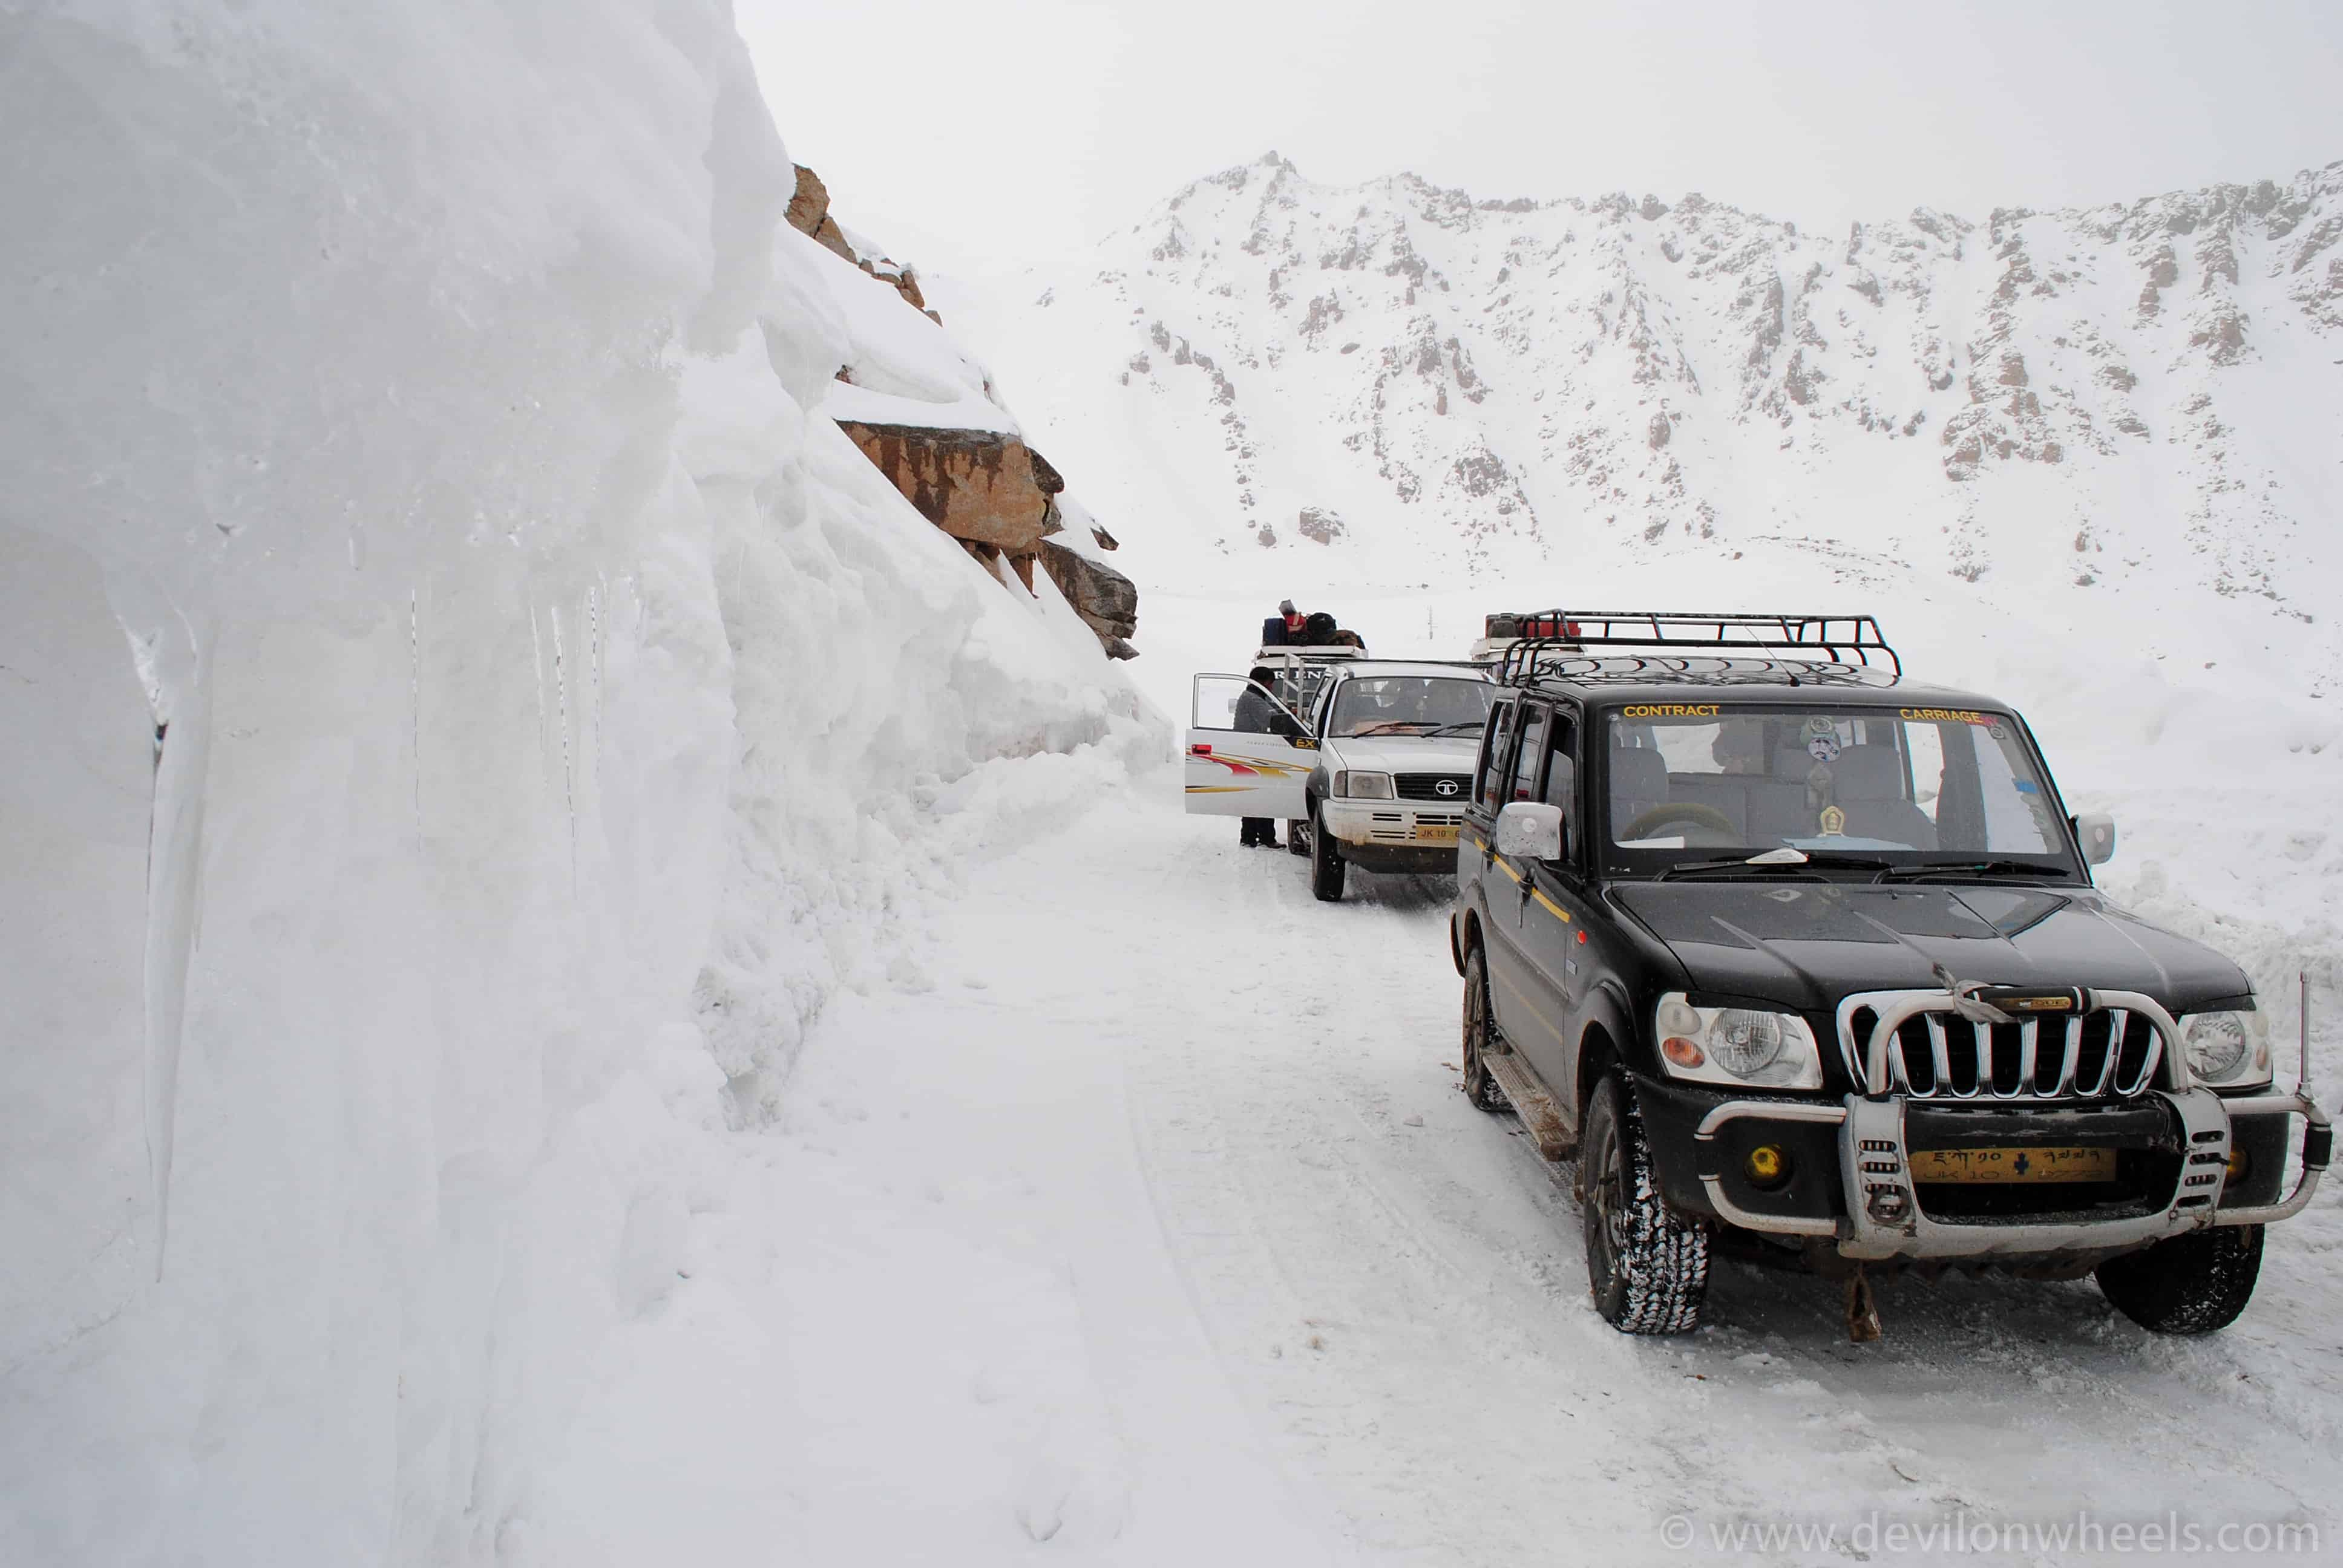 Taxis plying in winters in Ladakh